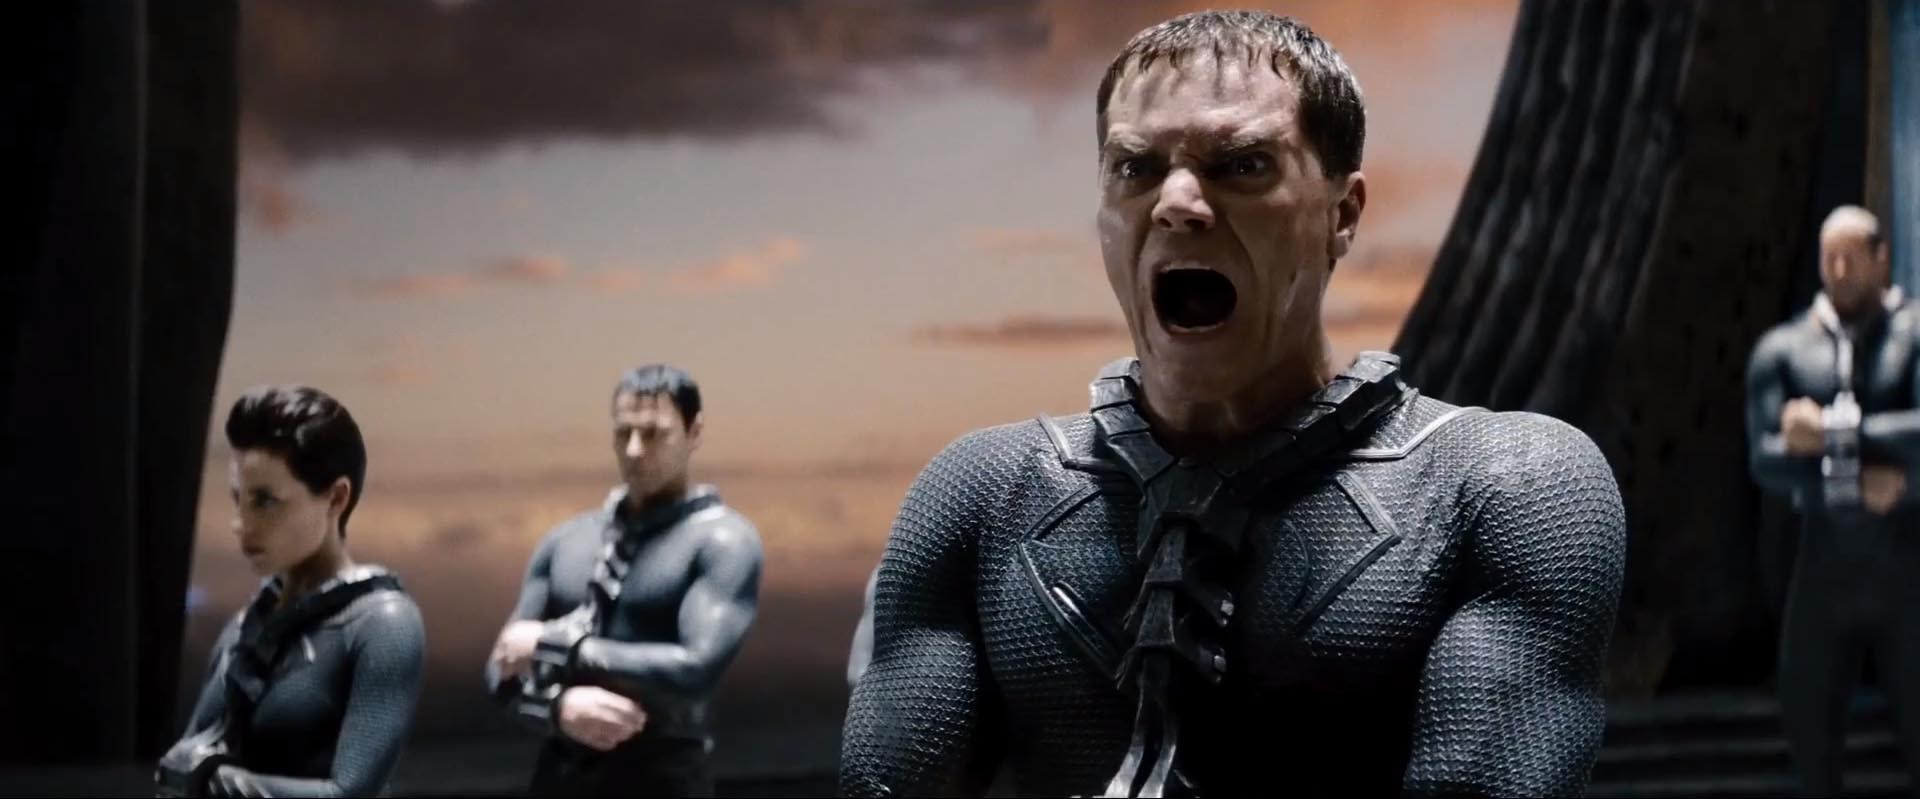 Michael Shannon plays General Zod in Man of Steel (Picture: Warner Bros)